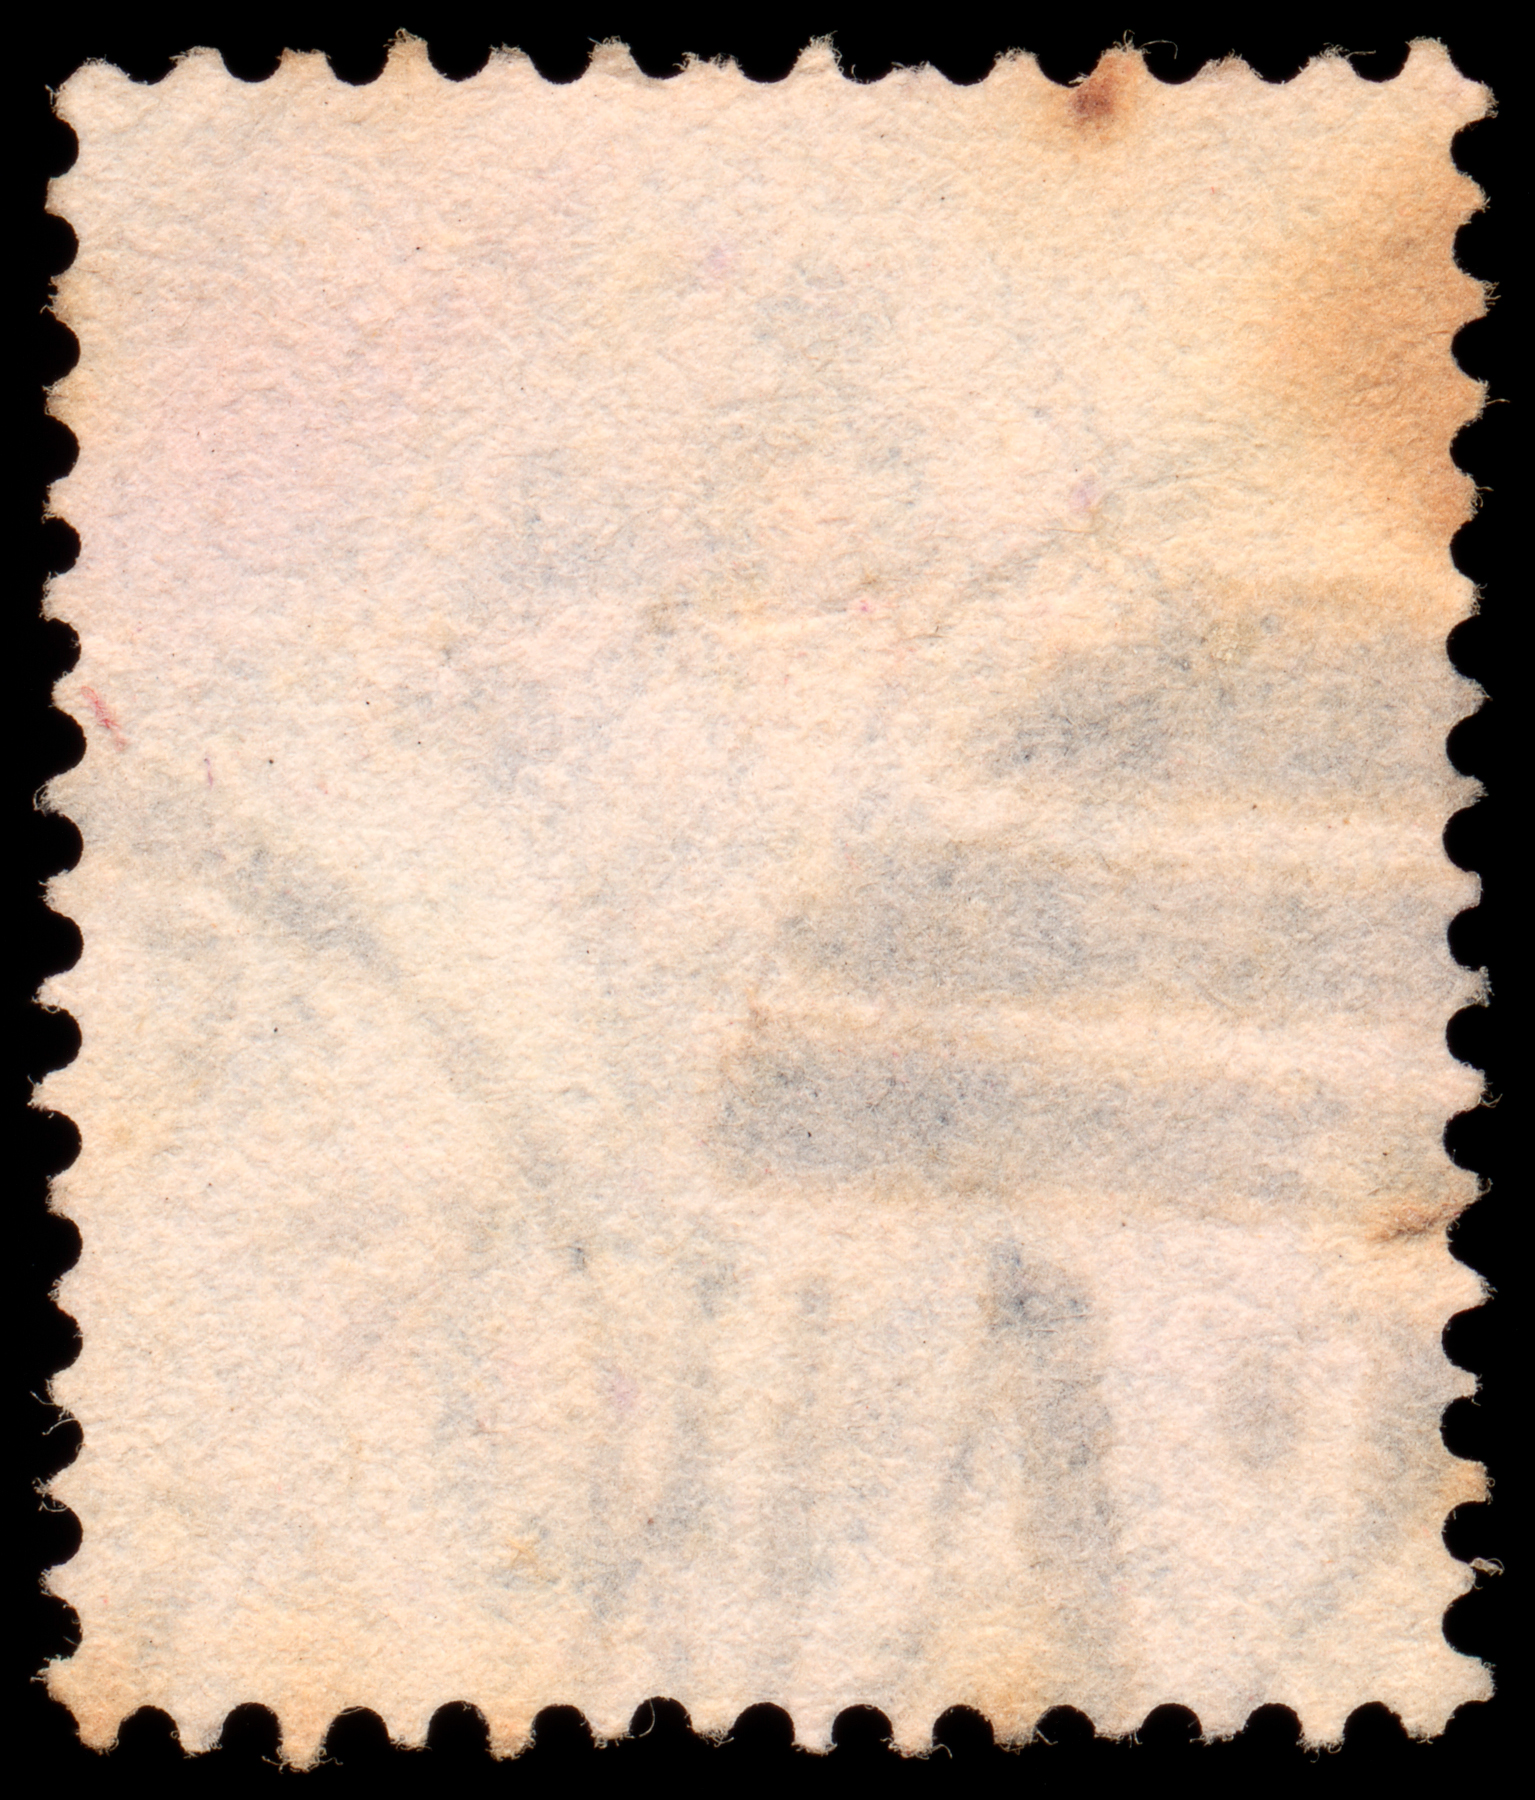 Old blank stamp photo